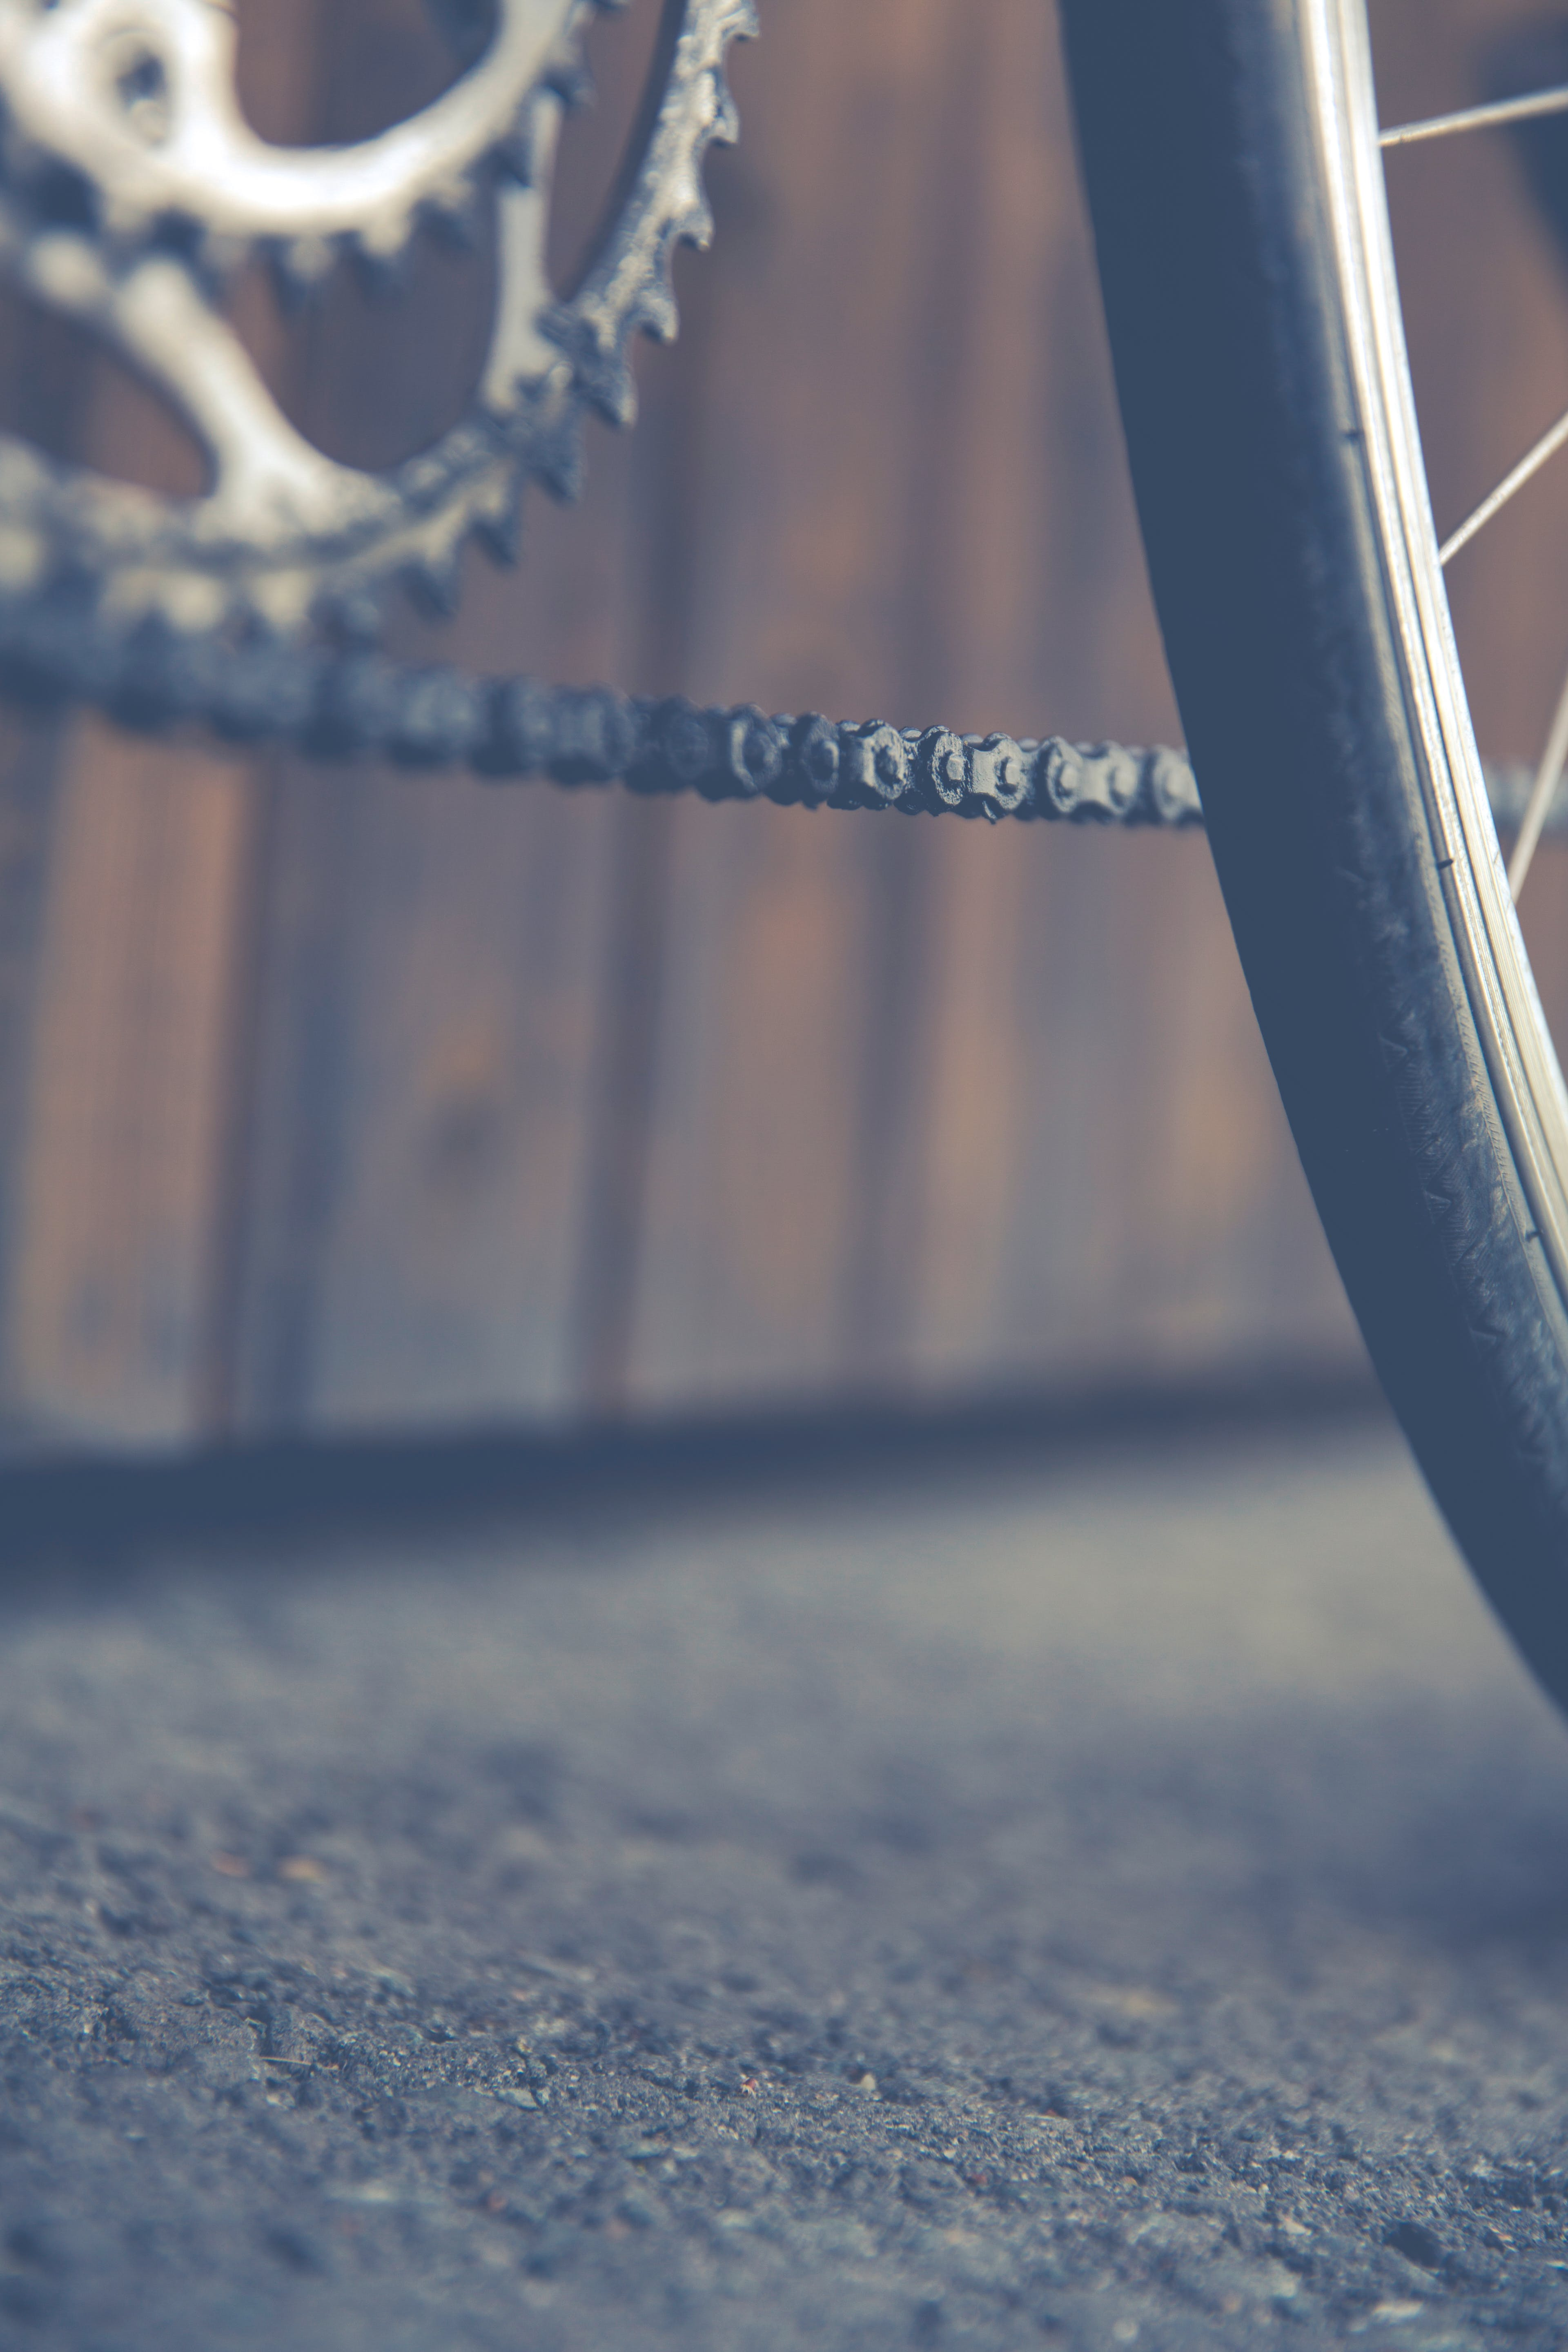 Black Bicycle Wheel and Chain